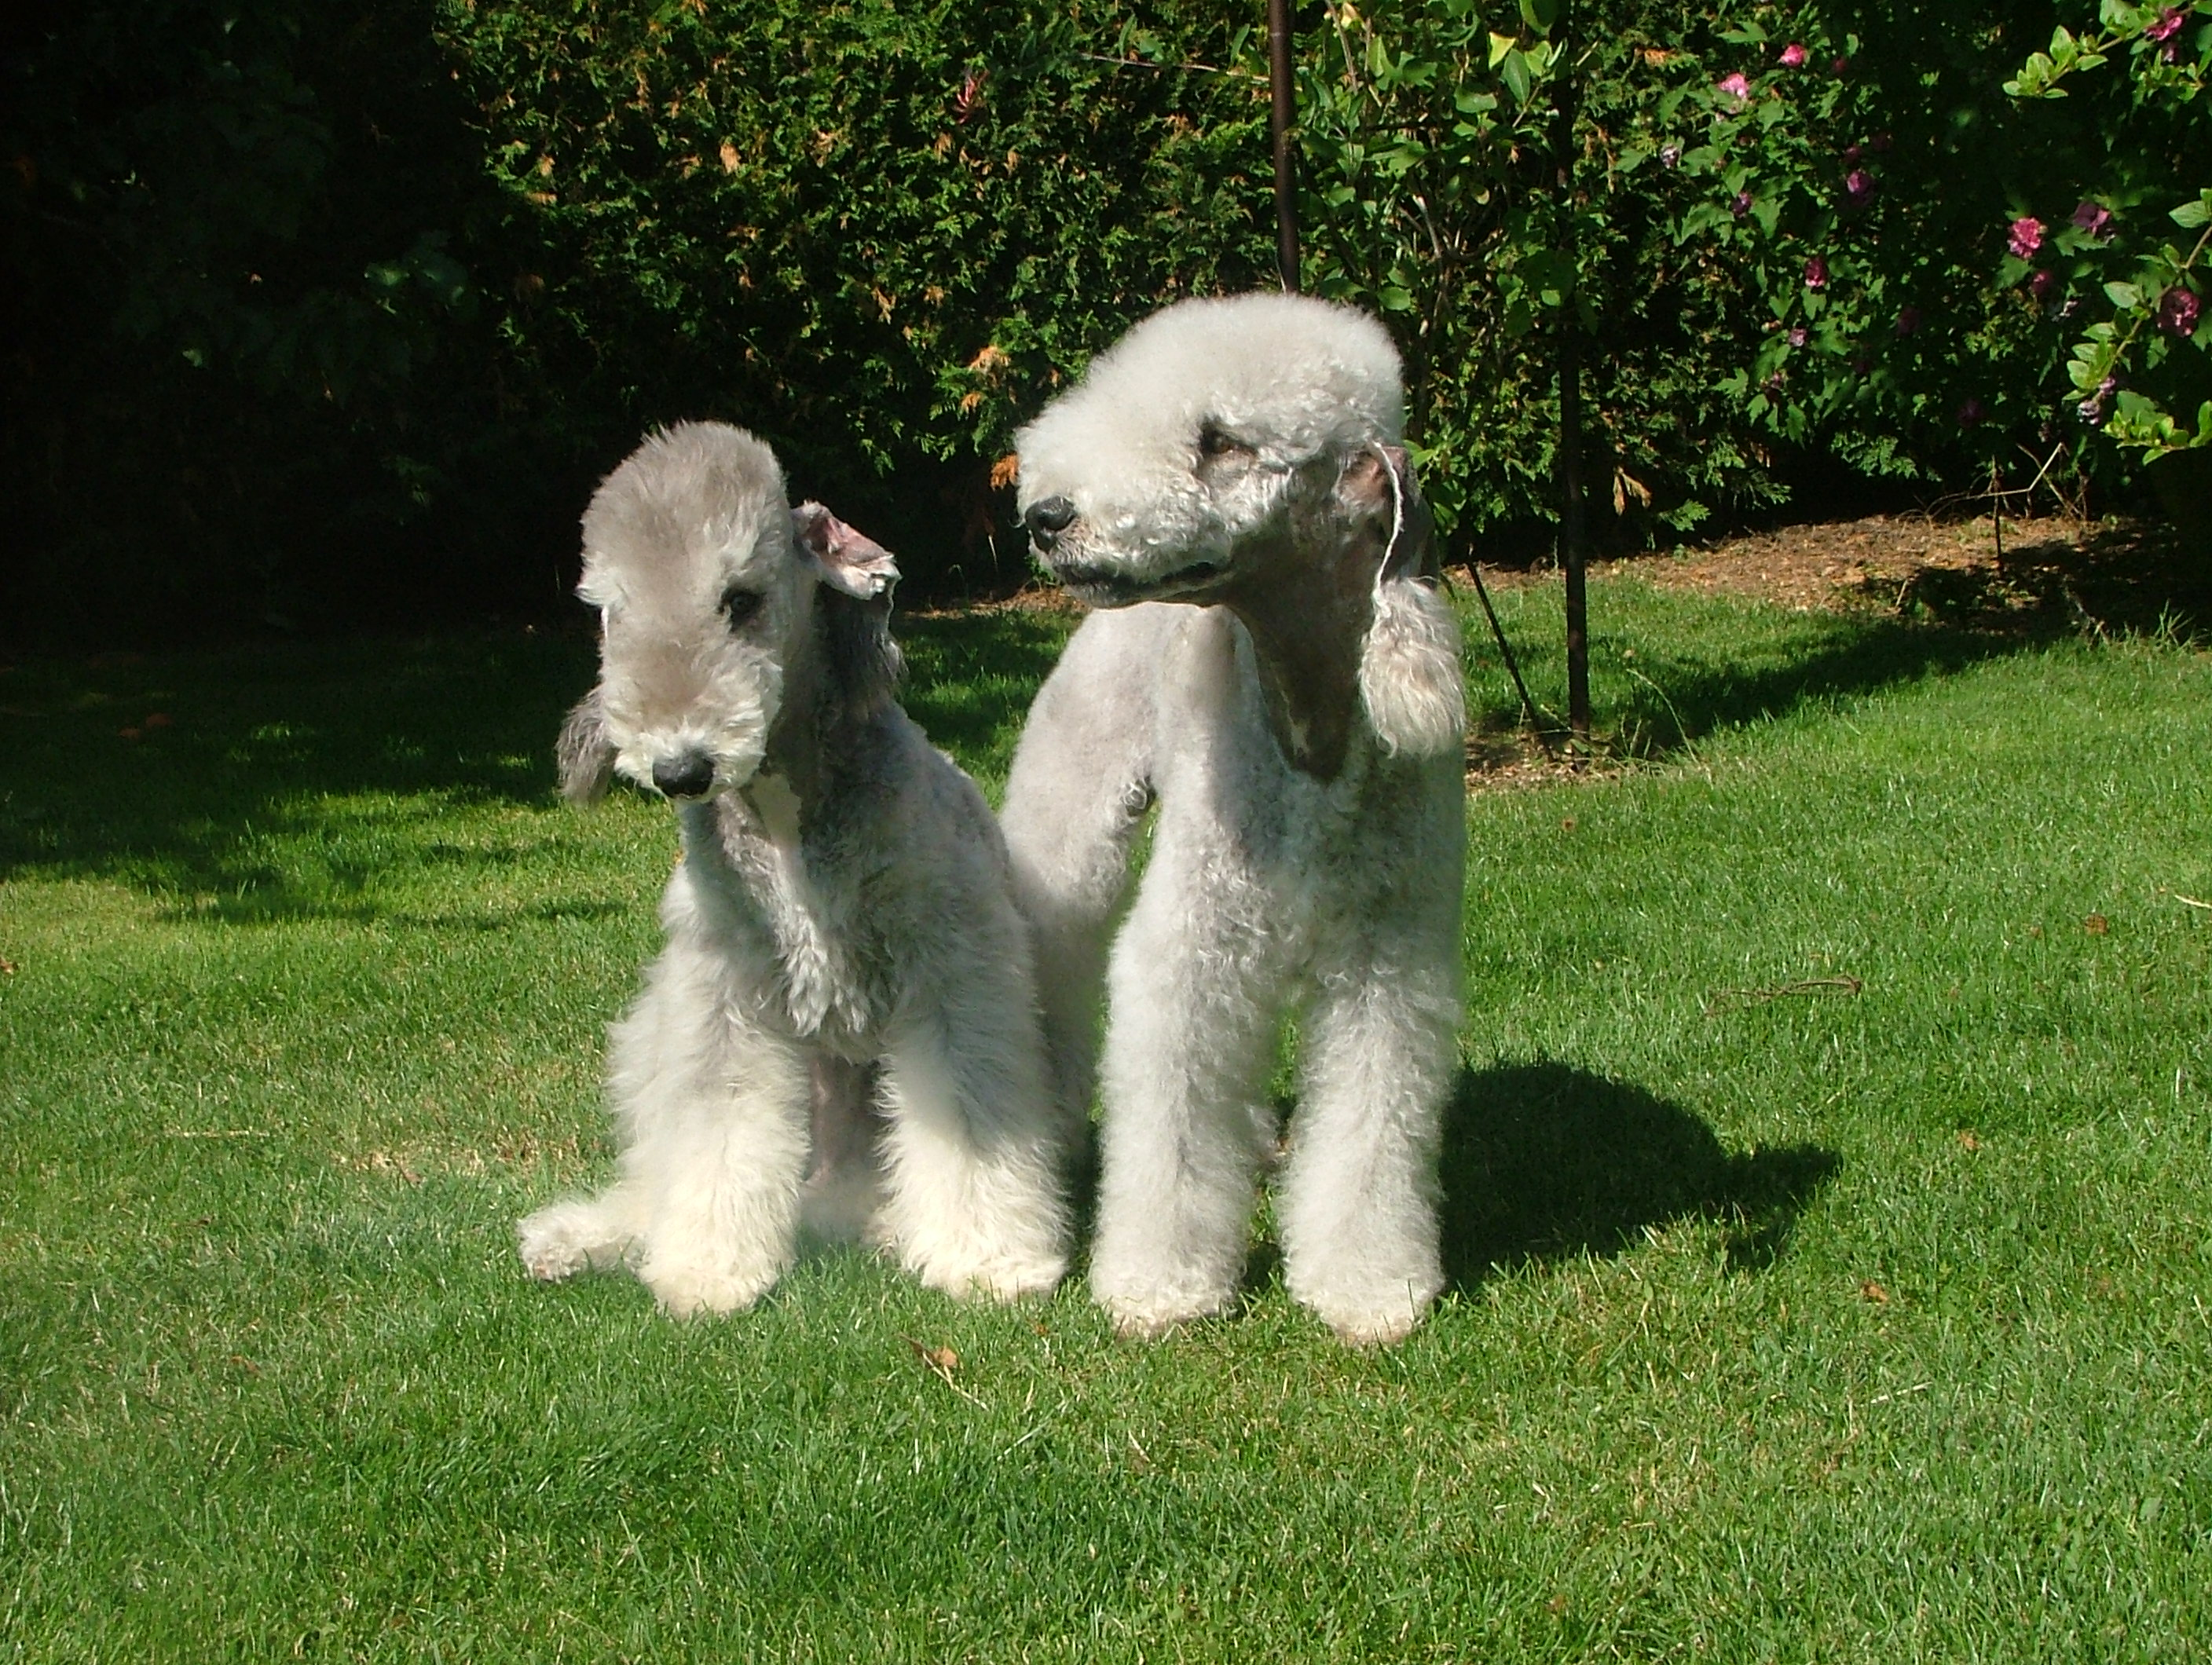 Two cute Bedlington Terrier dogs wallpaper